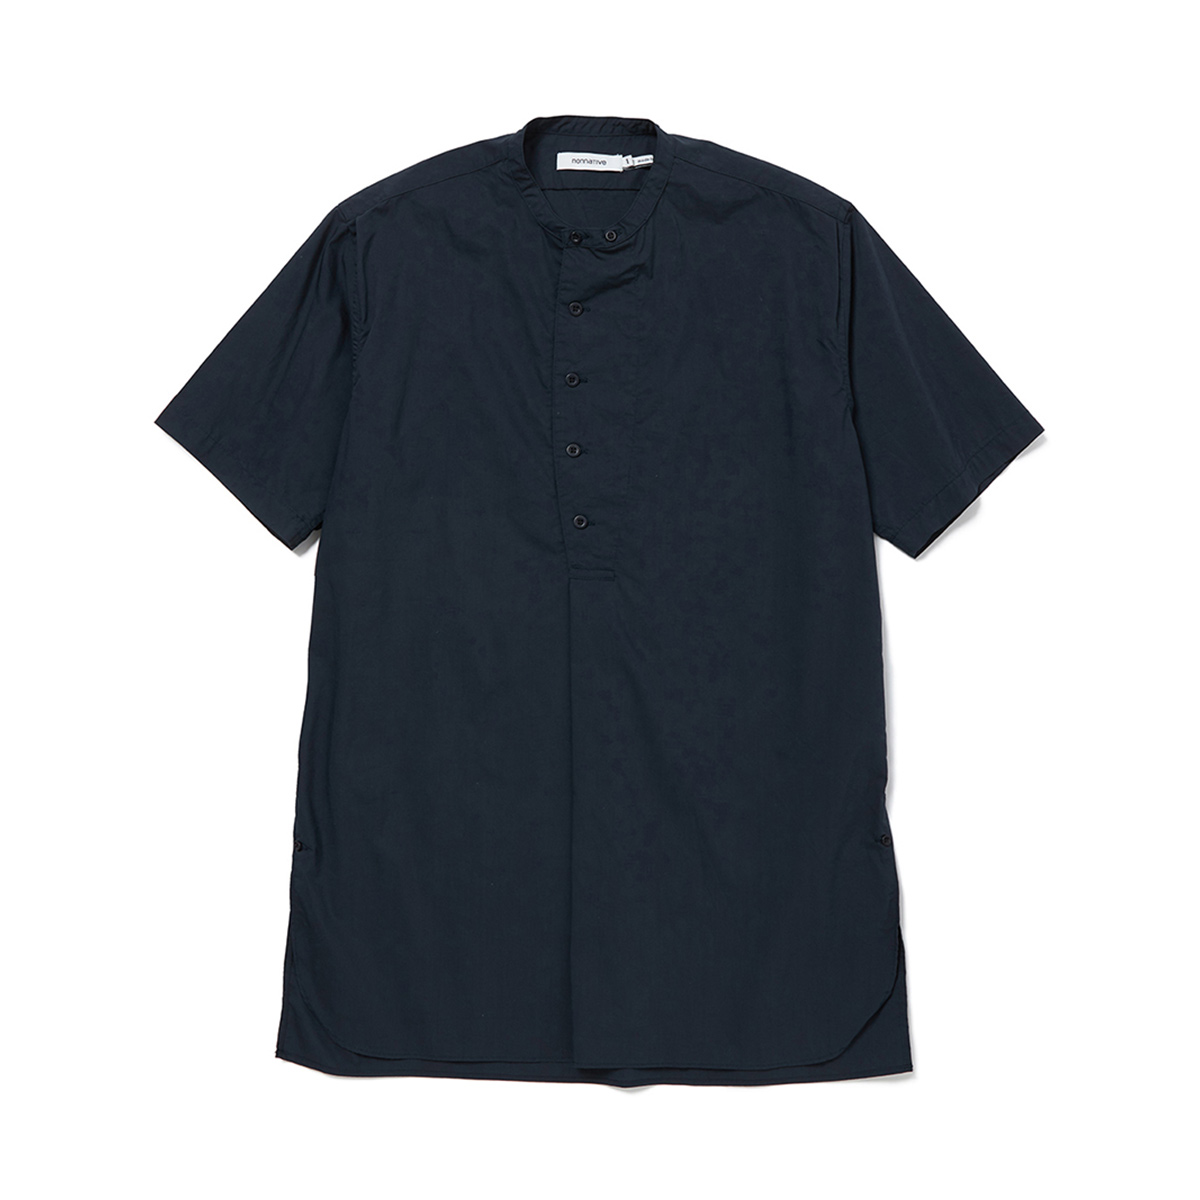 nonnative / SCIENTIST PULLOVER LONG SHIRT S/S C/P TYPEWRITER STRETCH COOLMAX -Navy